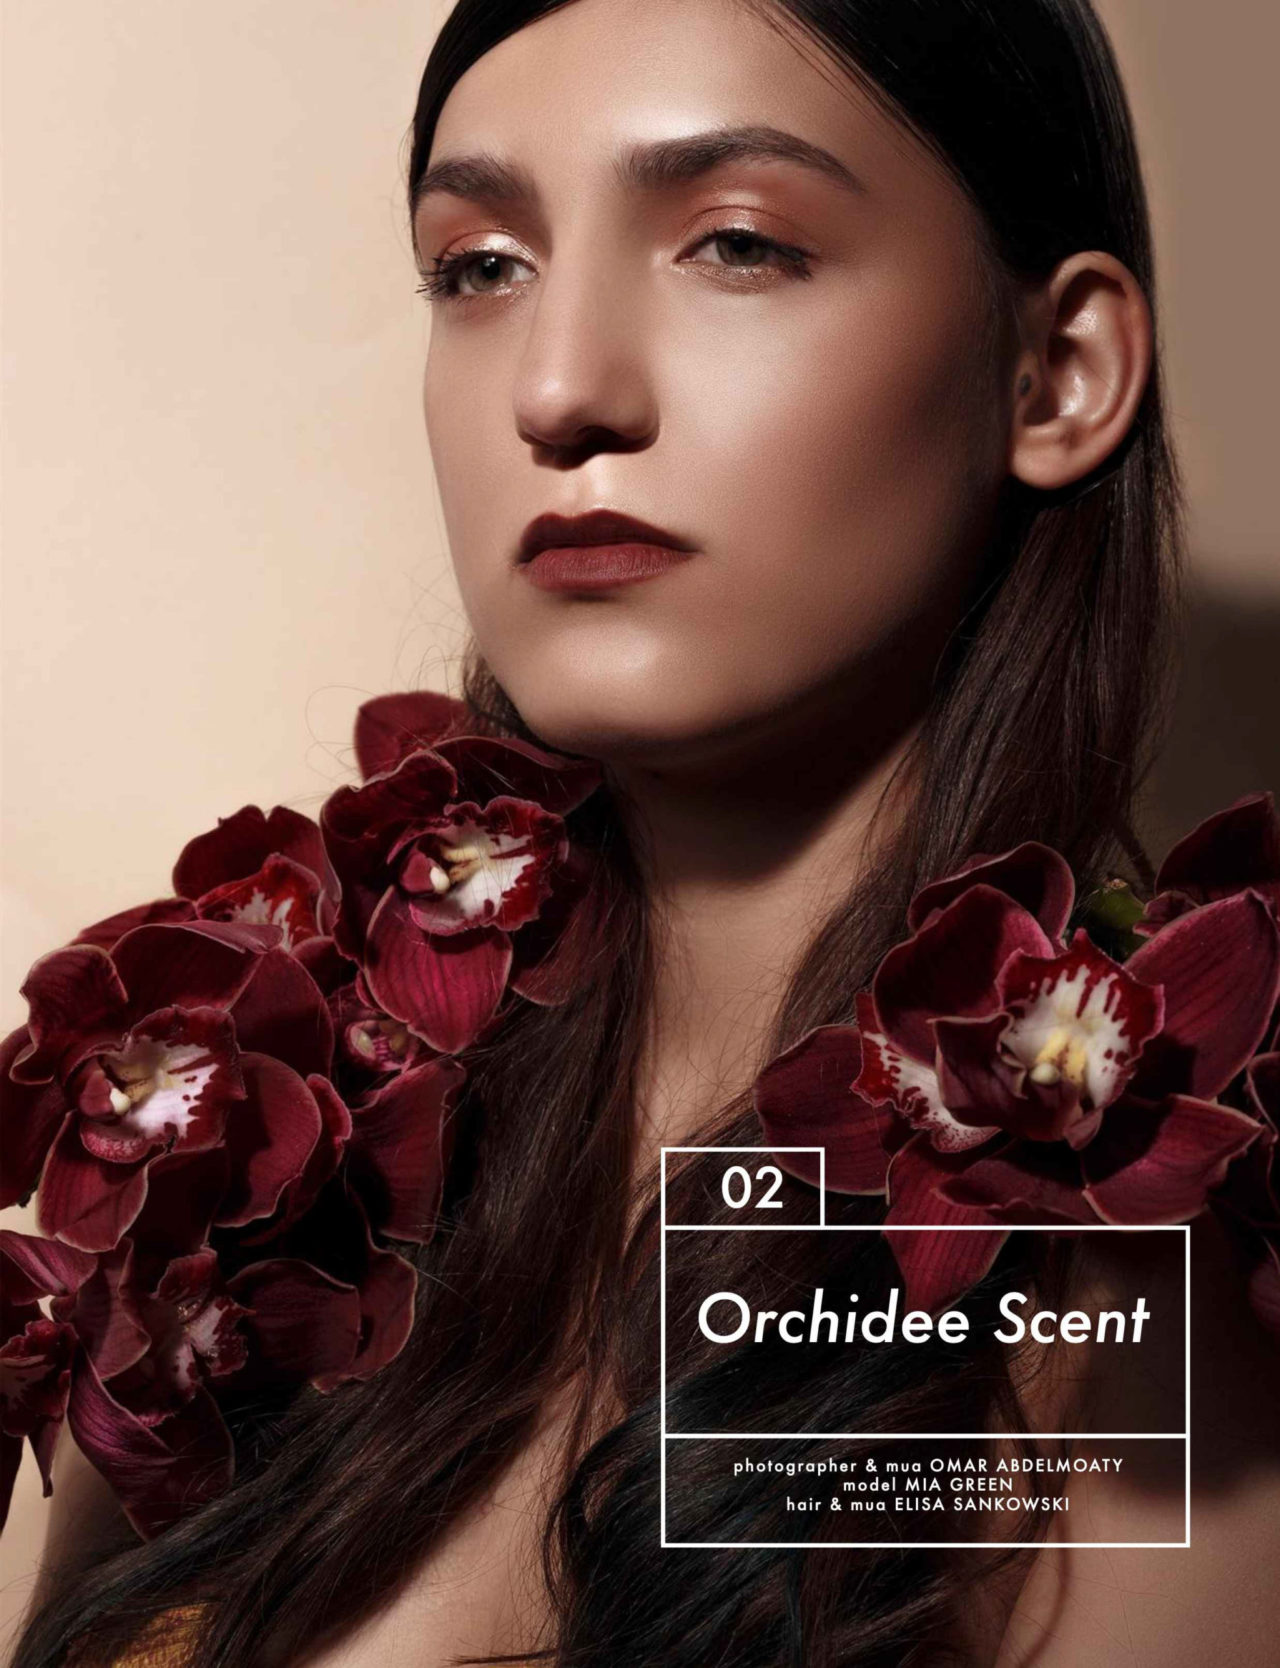 Orchidee Scent